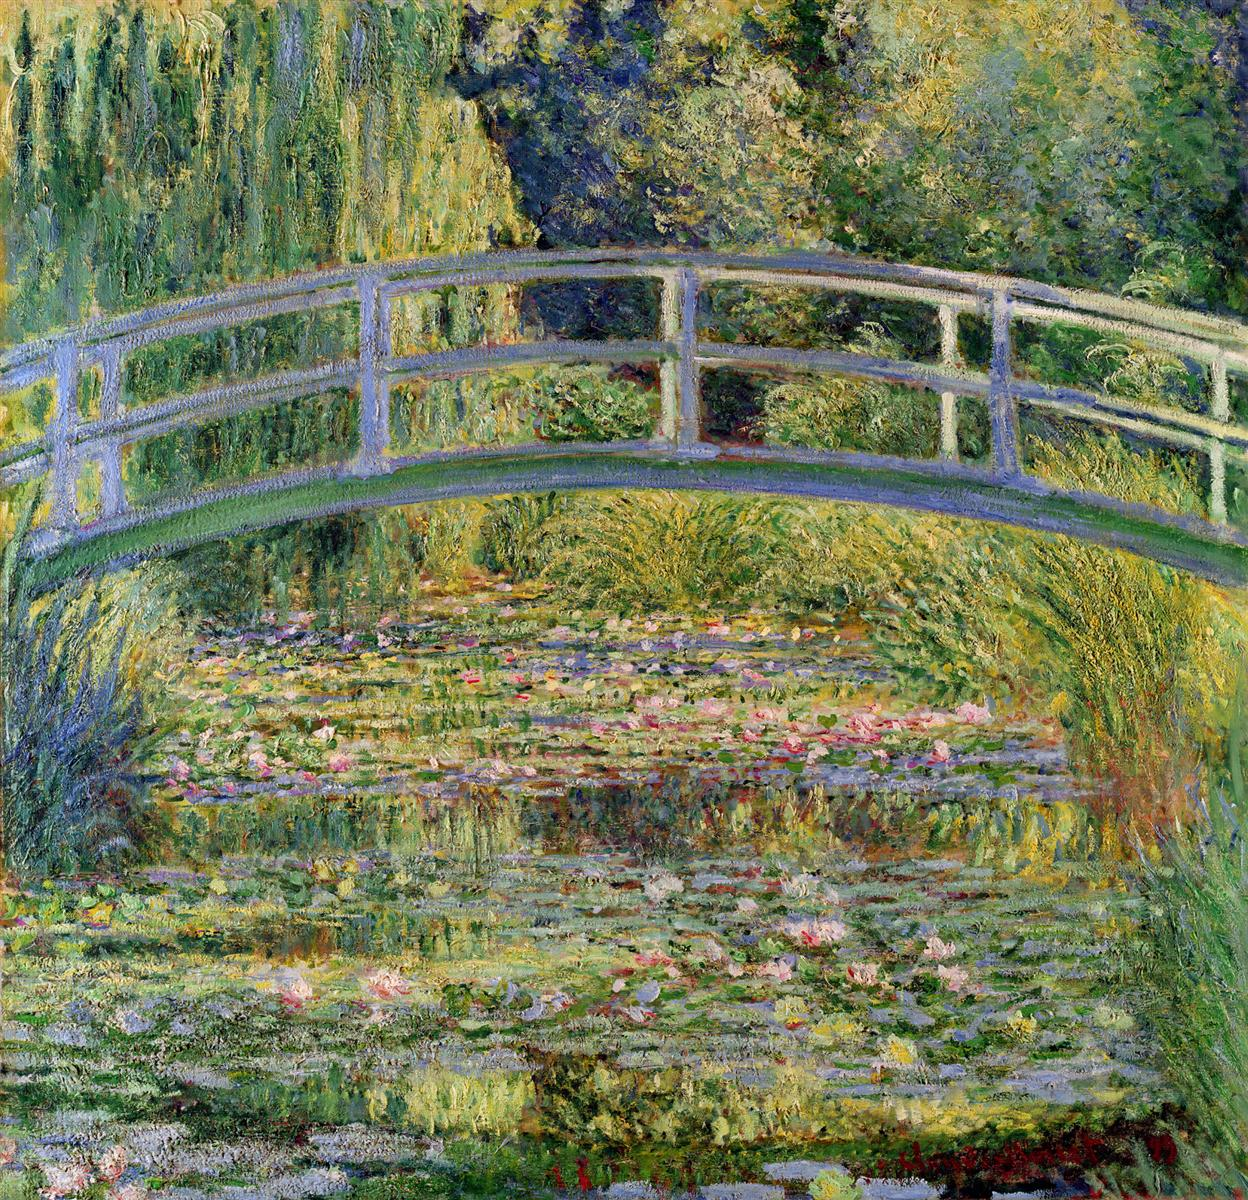 The Japanese Bridge by Claude Monet, 1899